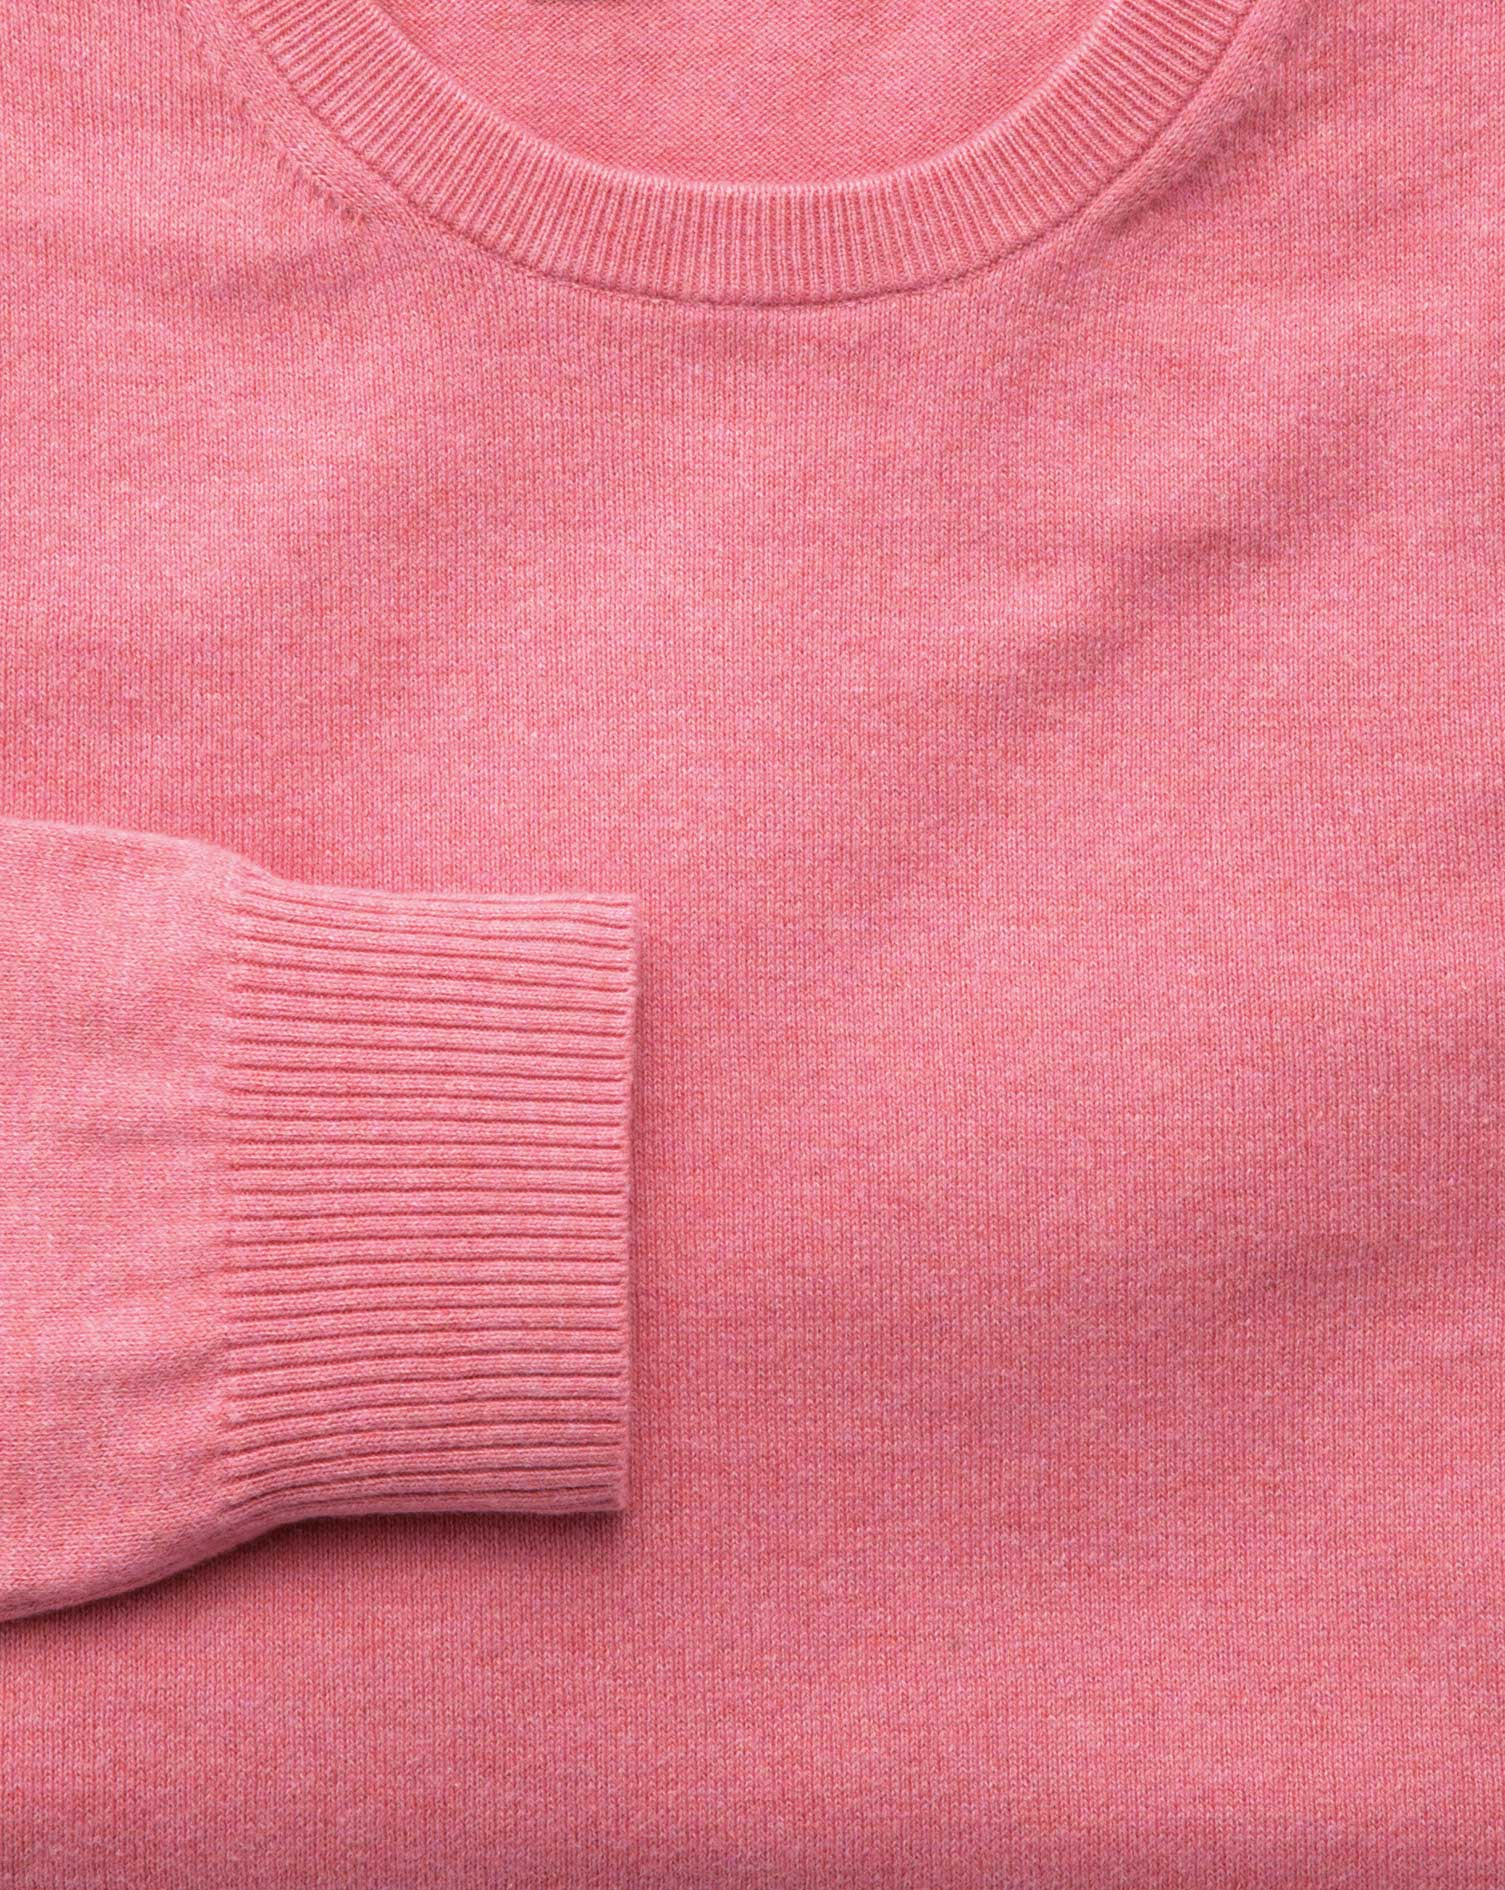 Pink cotton cashmere crew neck sweater | Charles Tyrwhitt